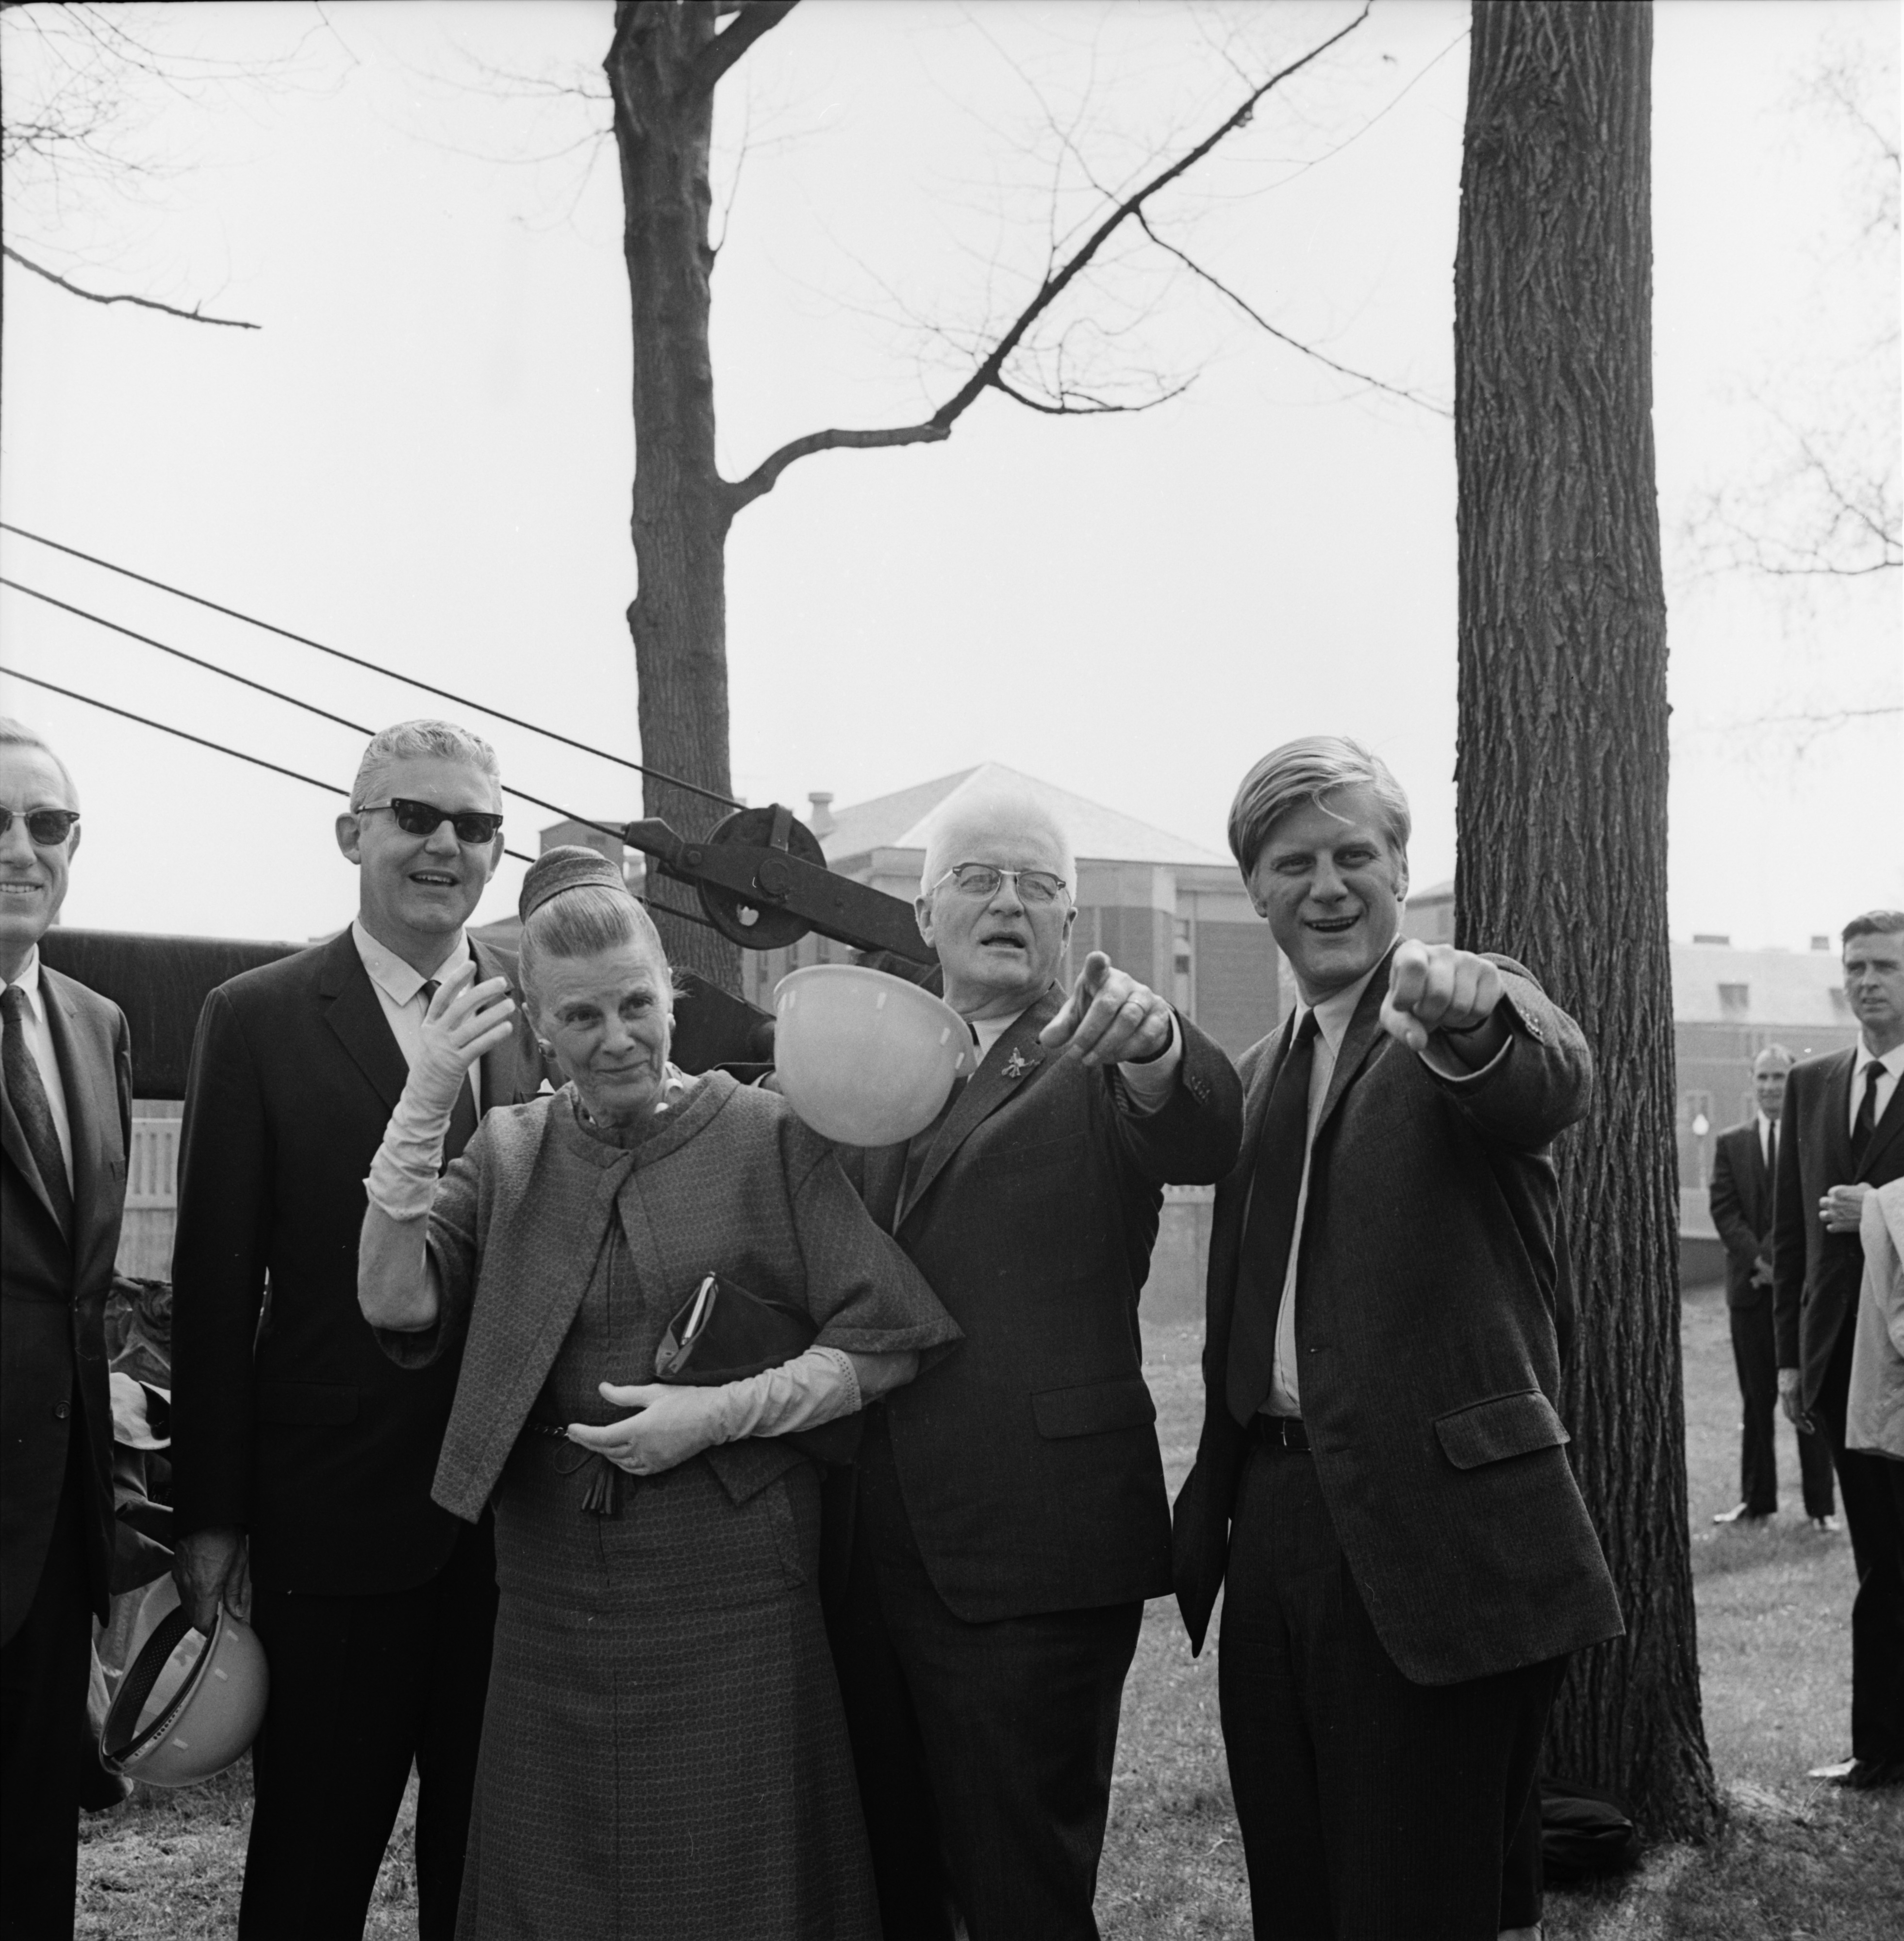 Groundbreaking for the Power Center, April 1969 image